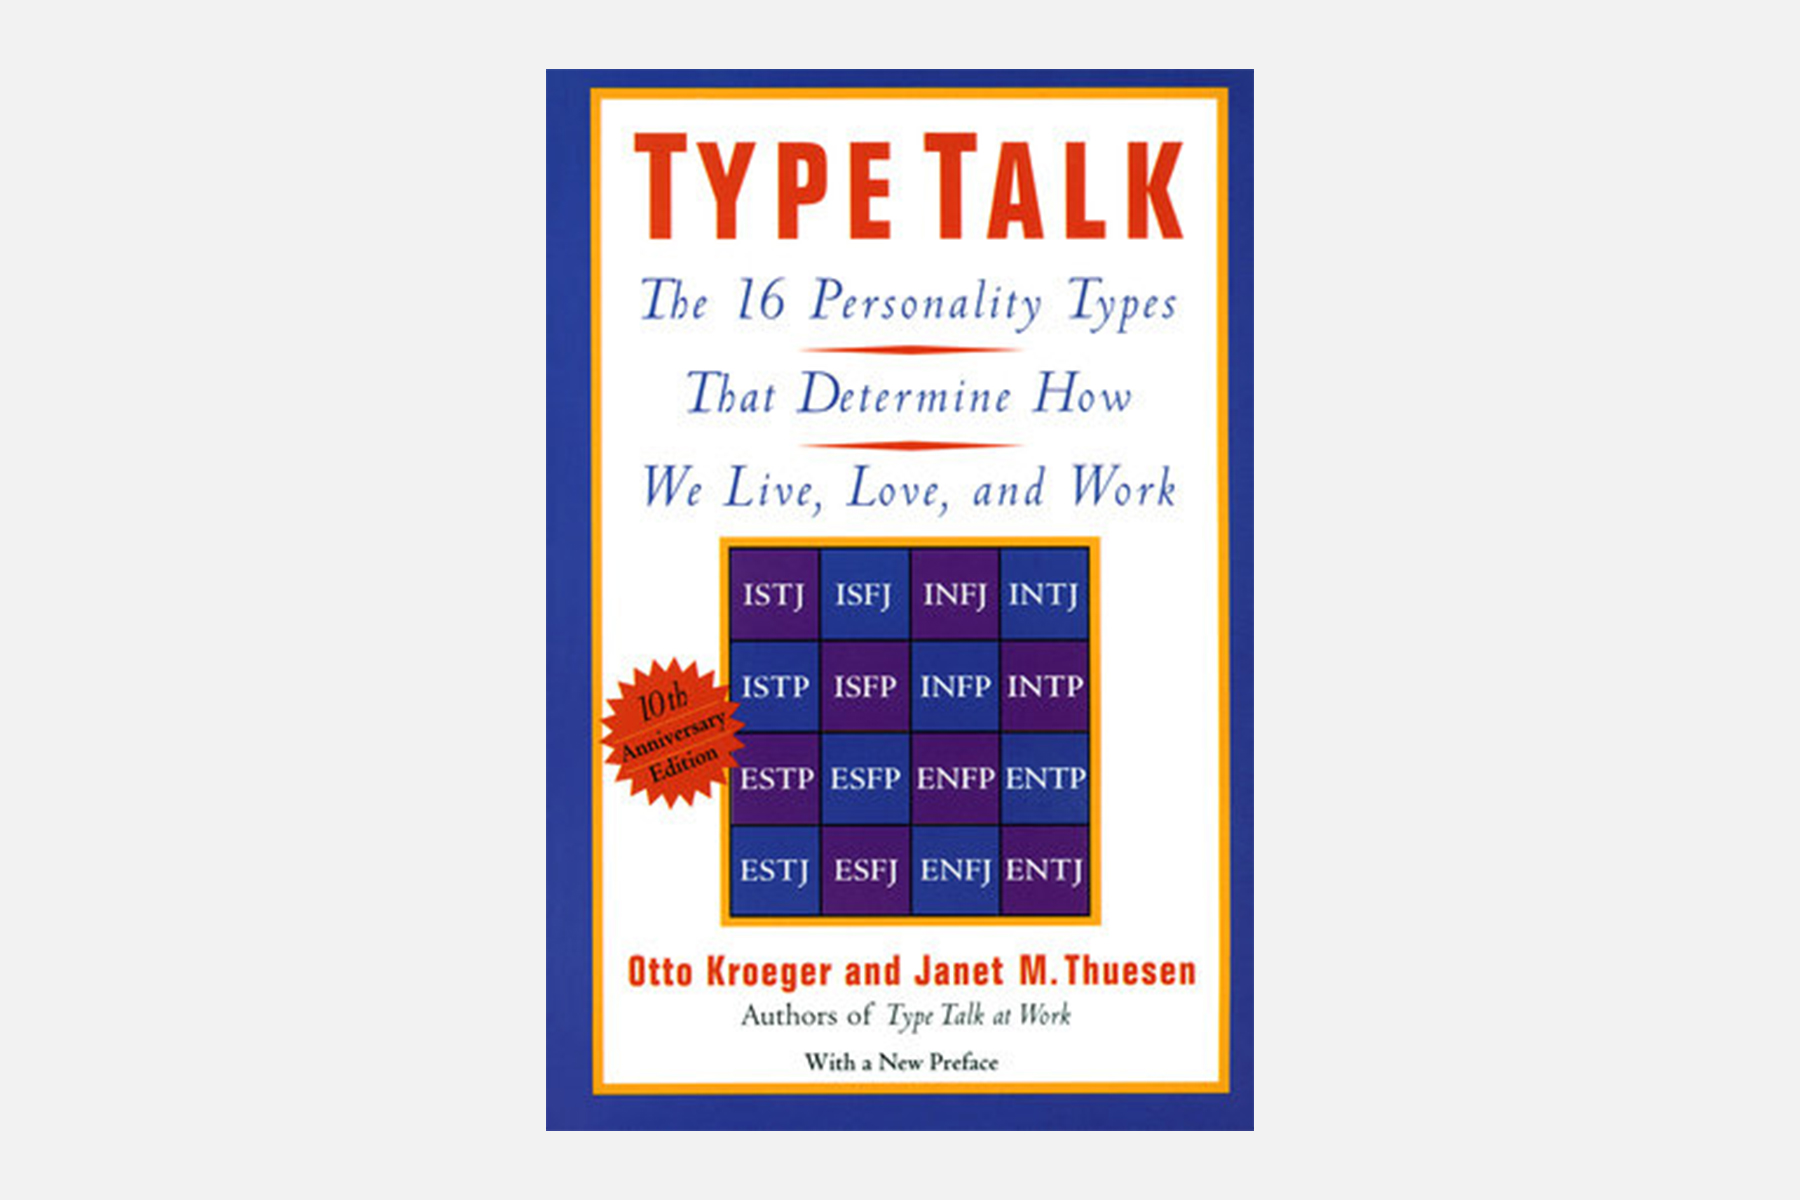 type talk by otto kroeger and janet m. thuesen